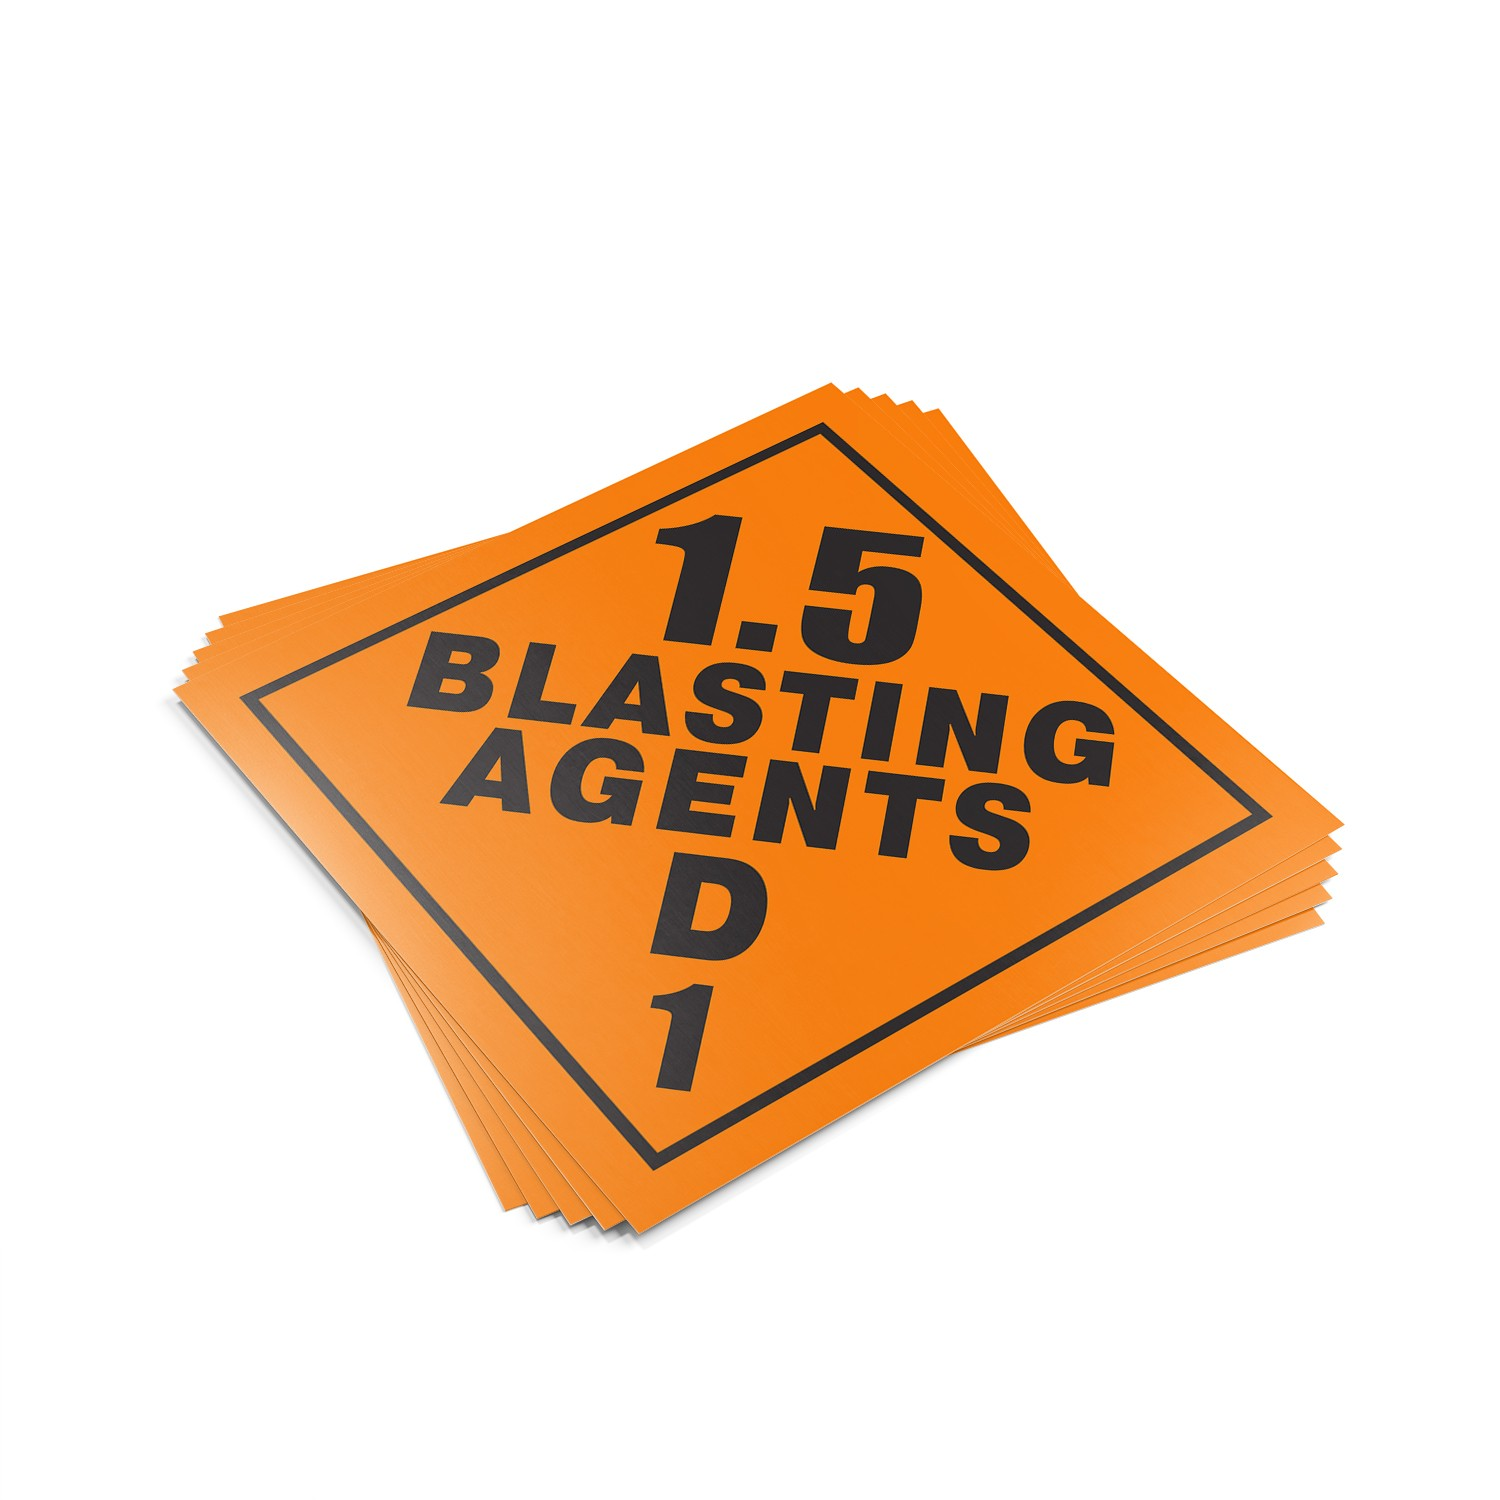 "TOTALPACK® 10 3/4 x 10 3/4"" - Placard ""1.5 Blasting Agents D 1"" 25 Units"